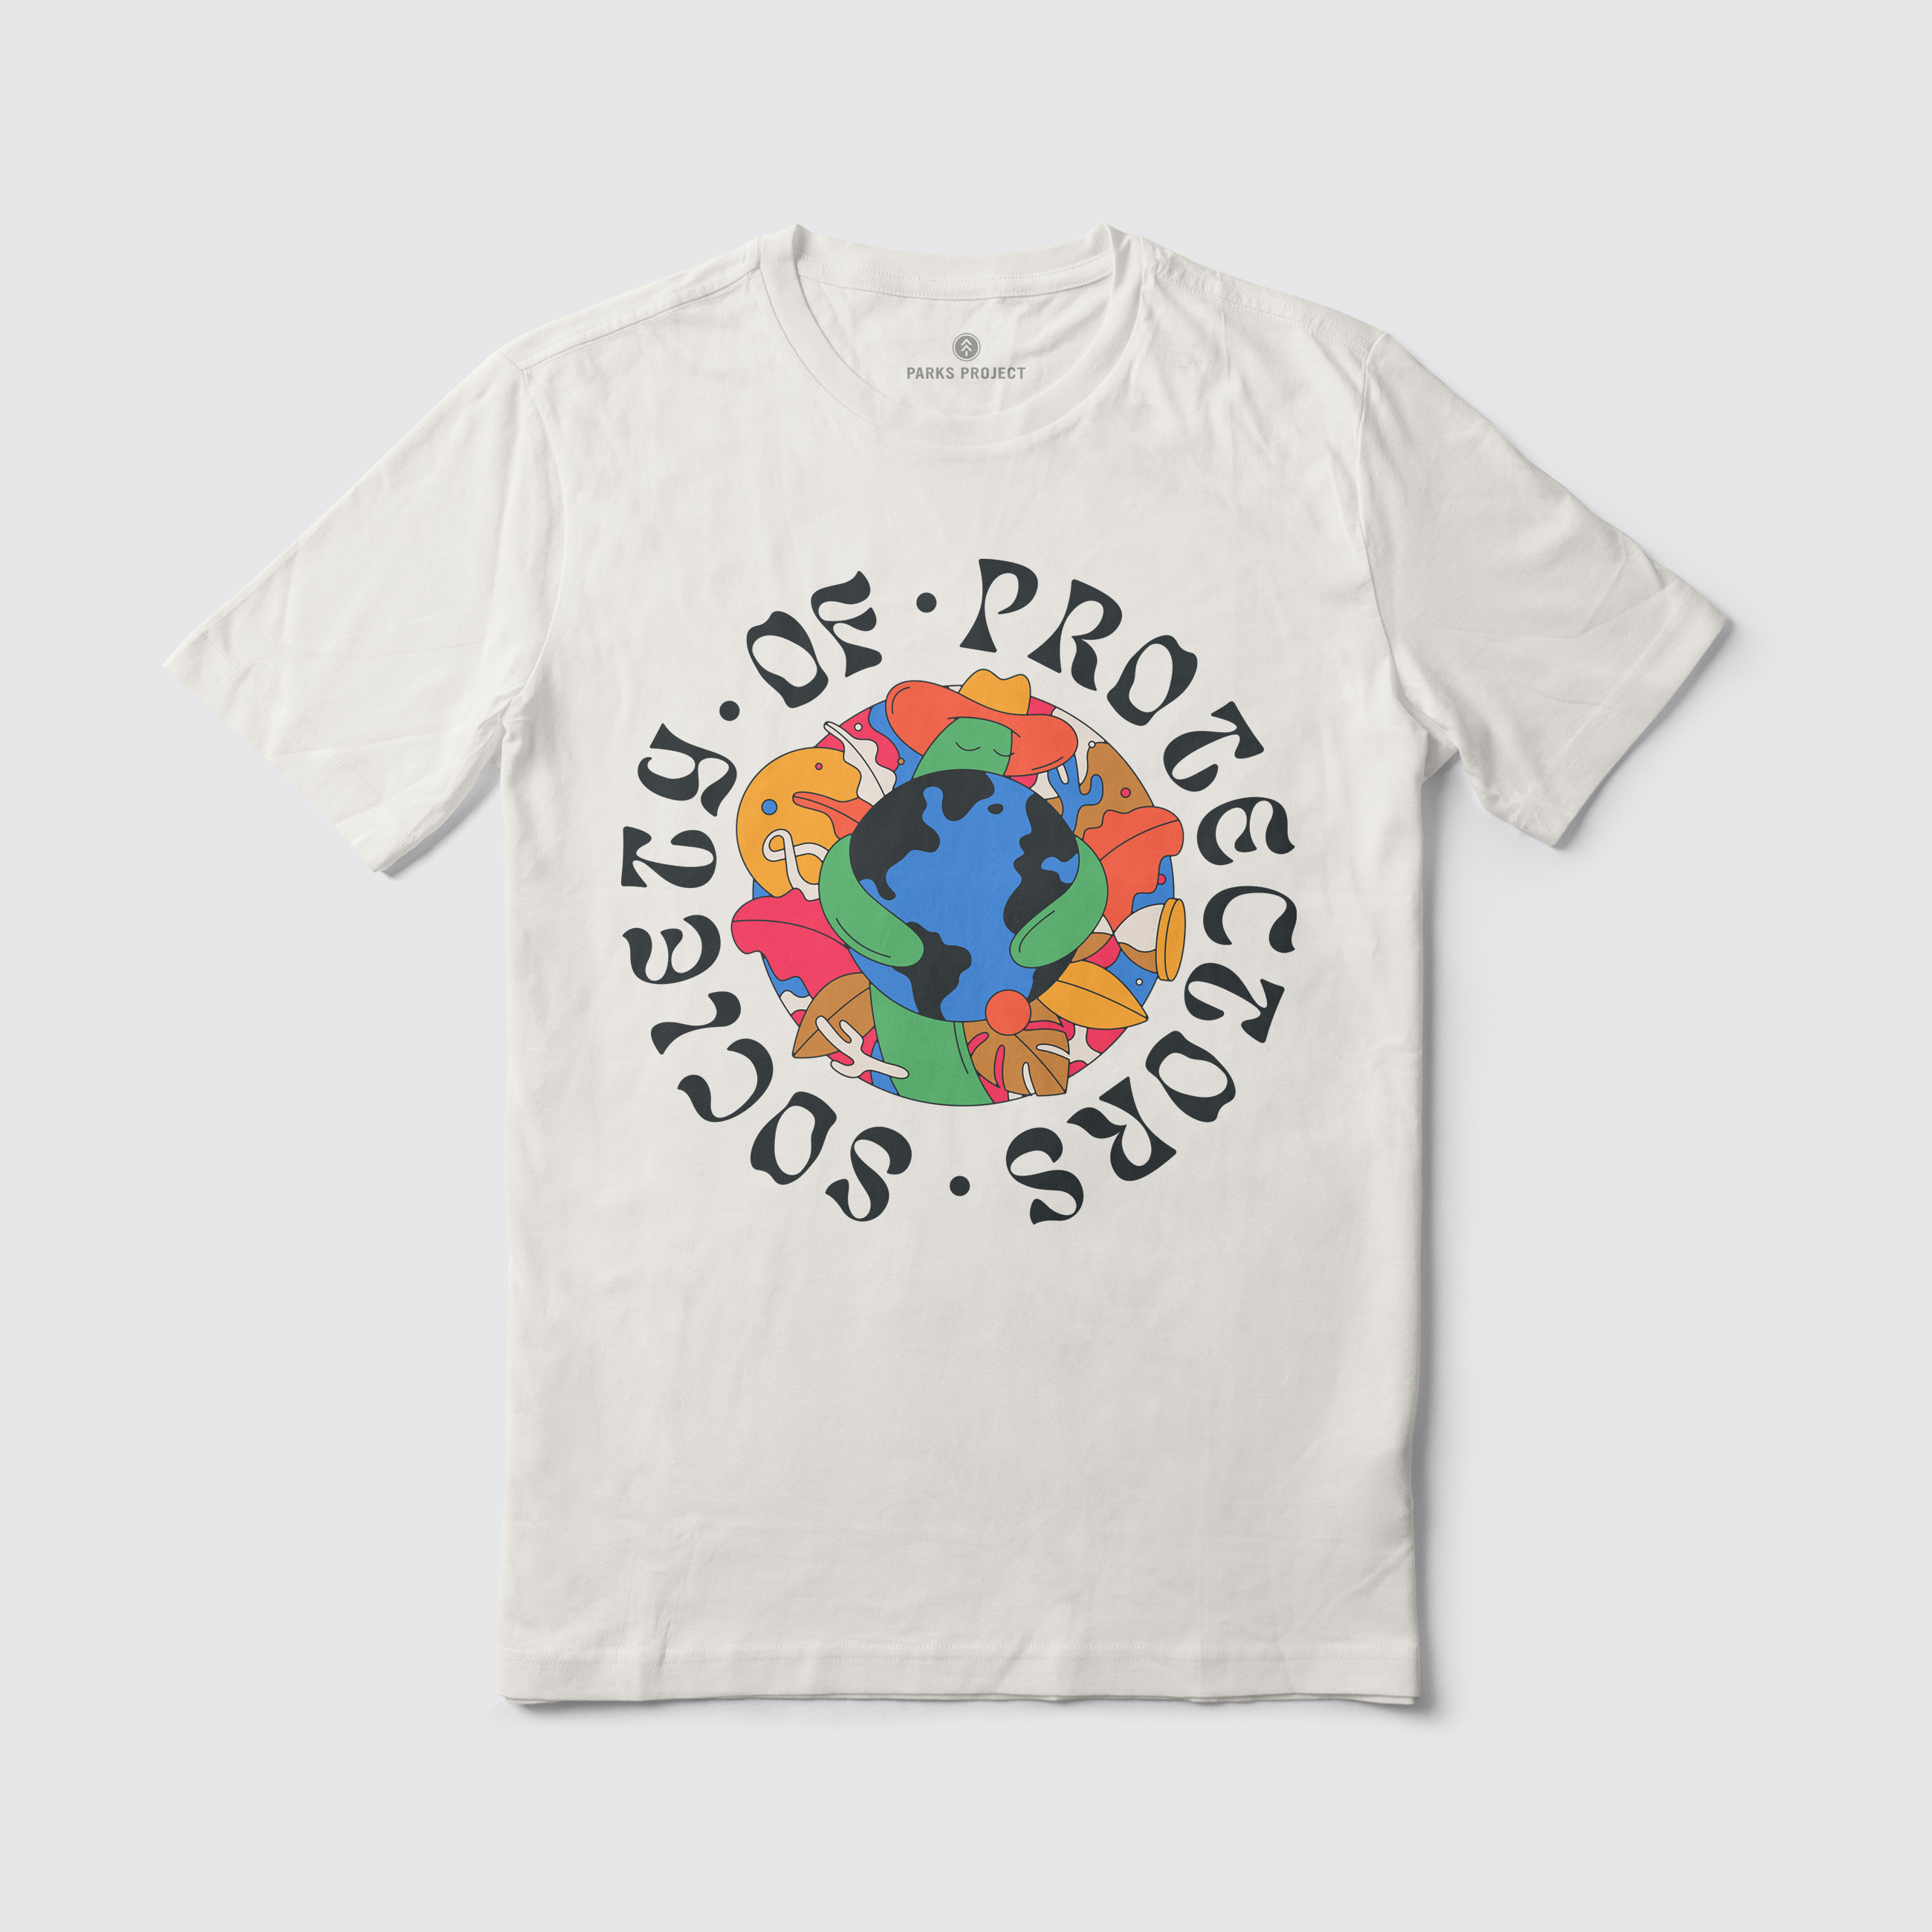 TBS_NF_ParksProject_Tee_4